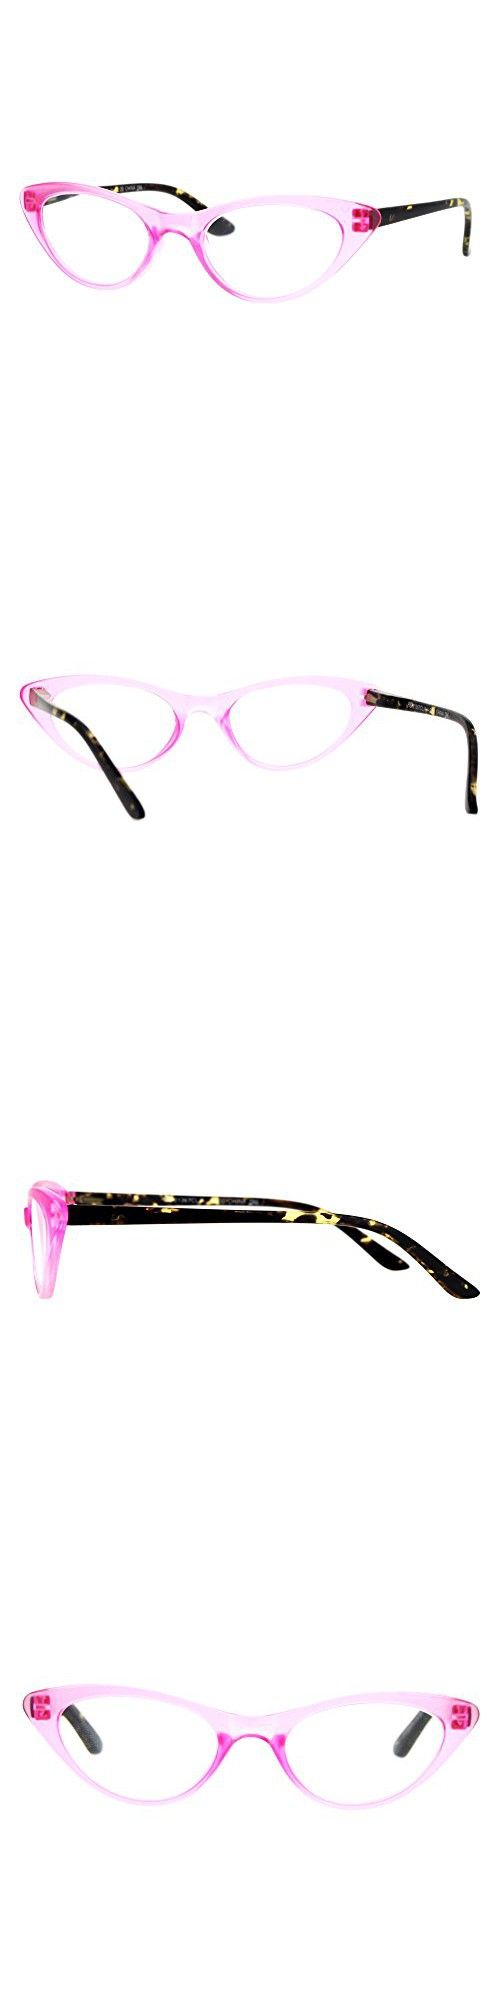 Womens Retro Design Narrow Cat Eye Plastic Reading Glasses Pink 1.5 ...